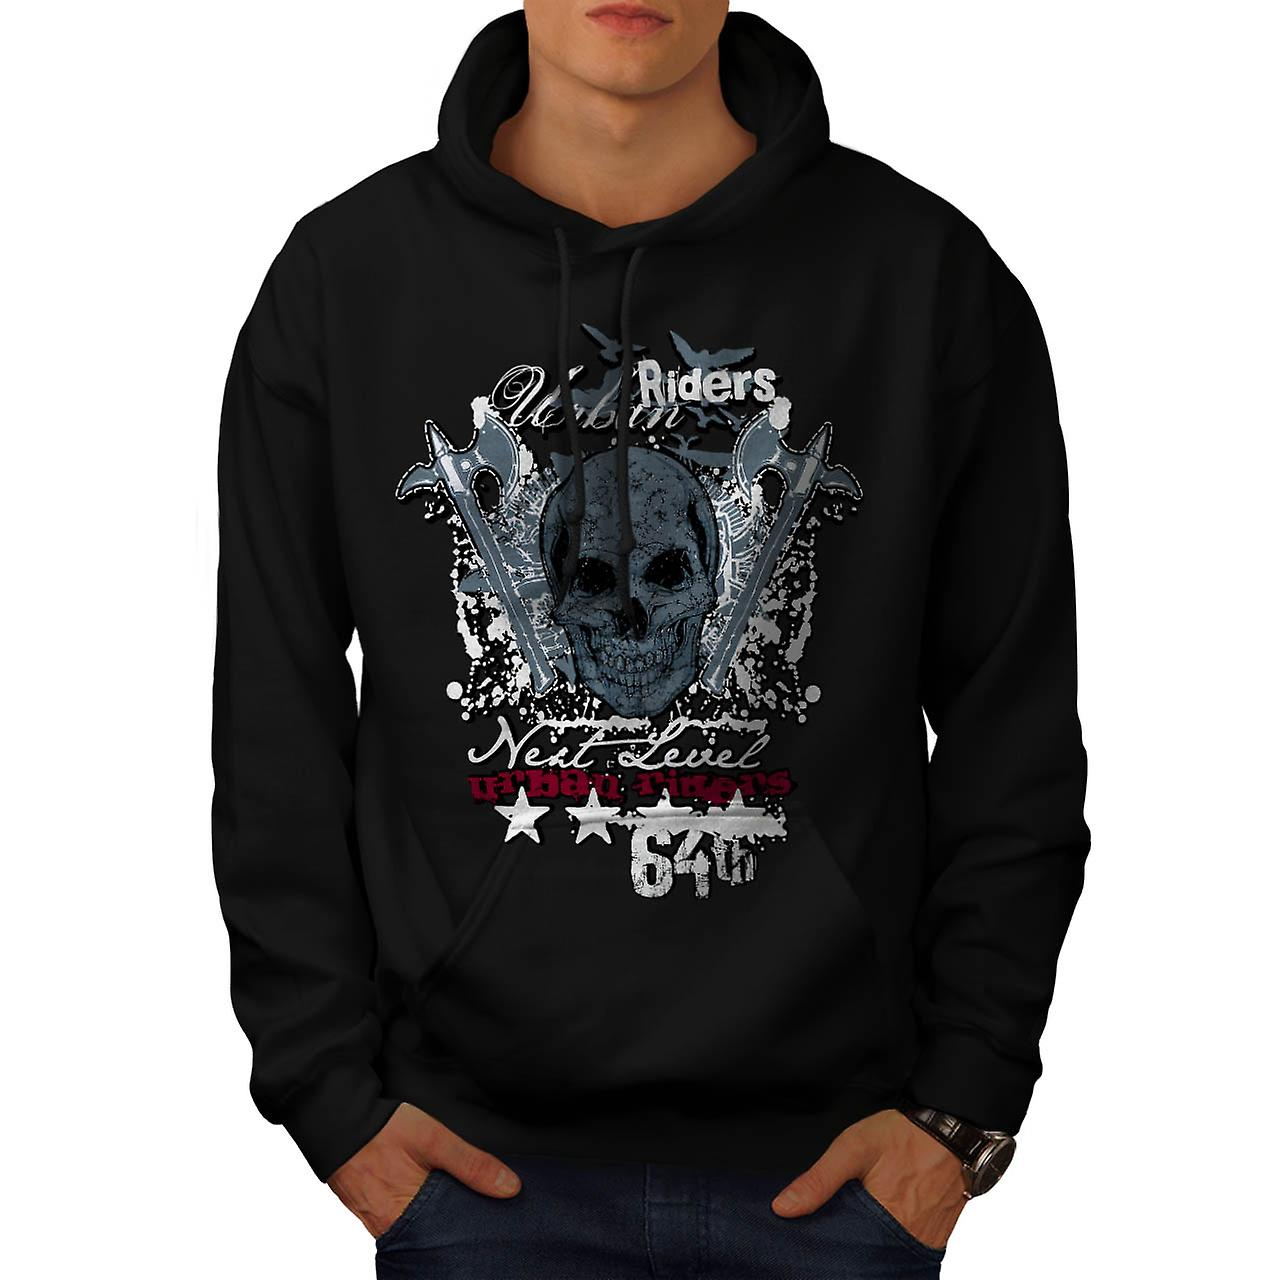 Urban Riders Skull Biker Men Black Hoodie | Wellcoda